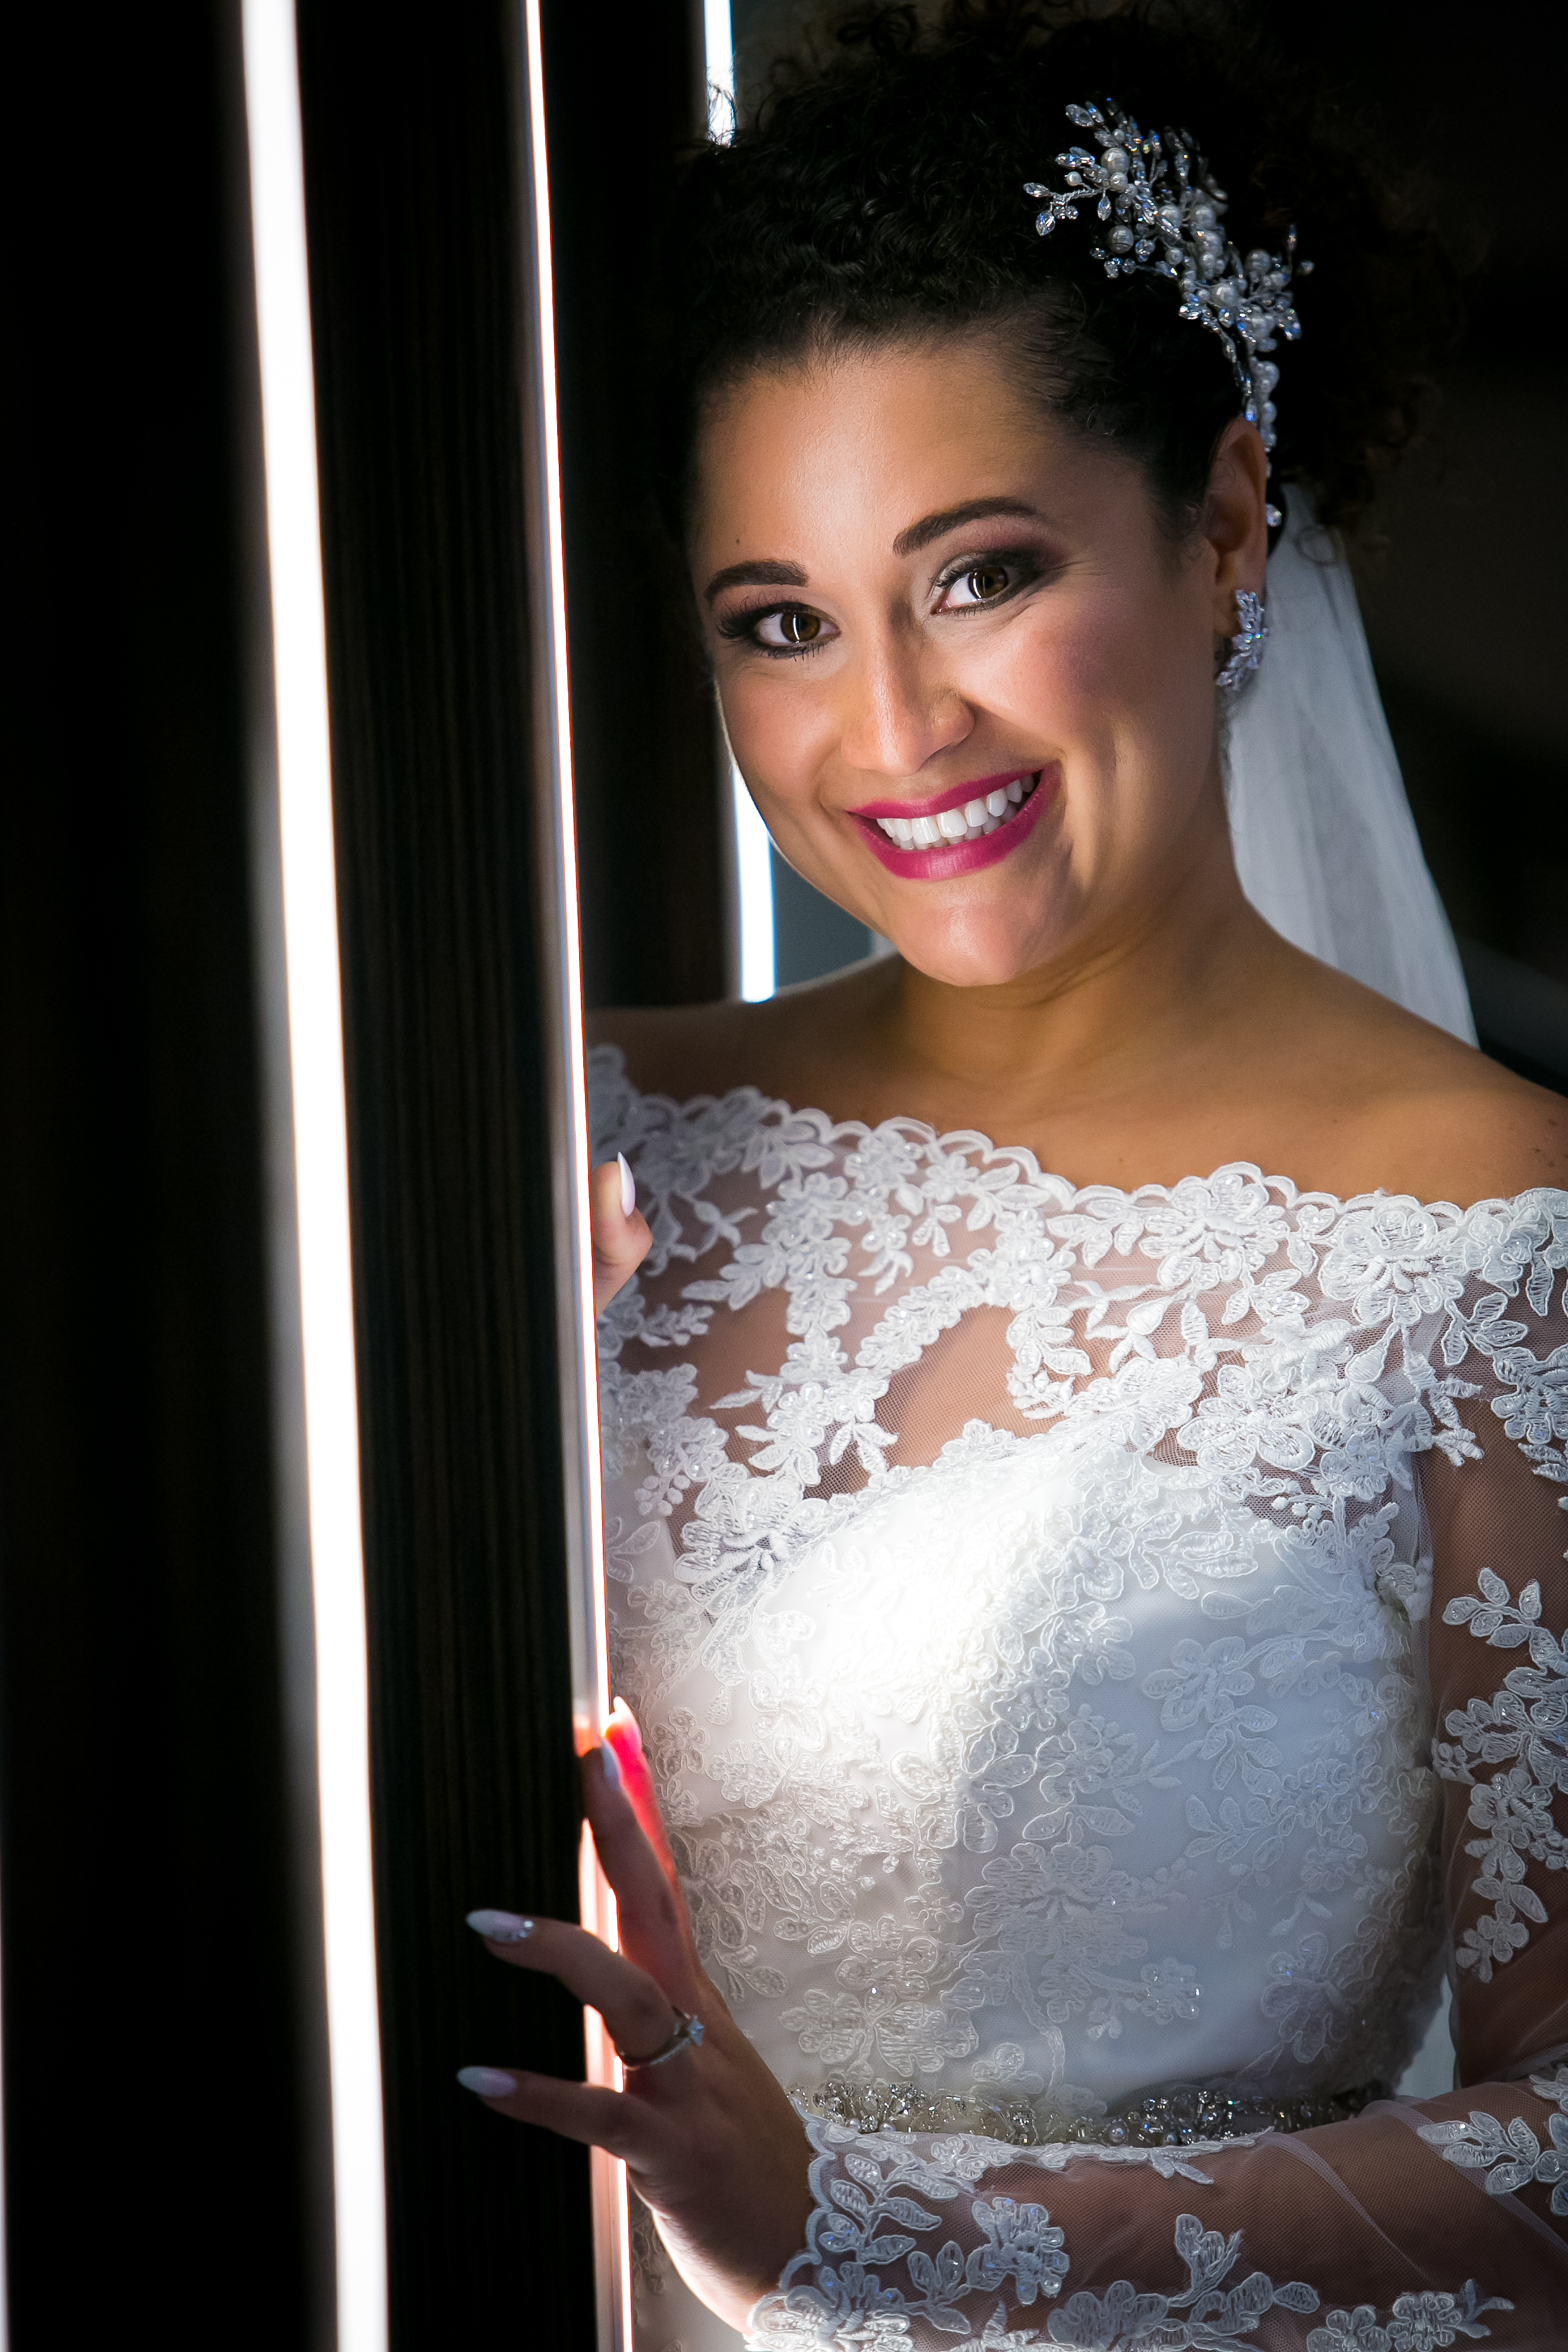 Bride by Lighted Wall